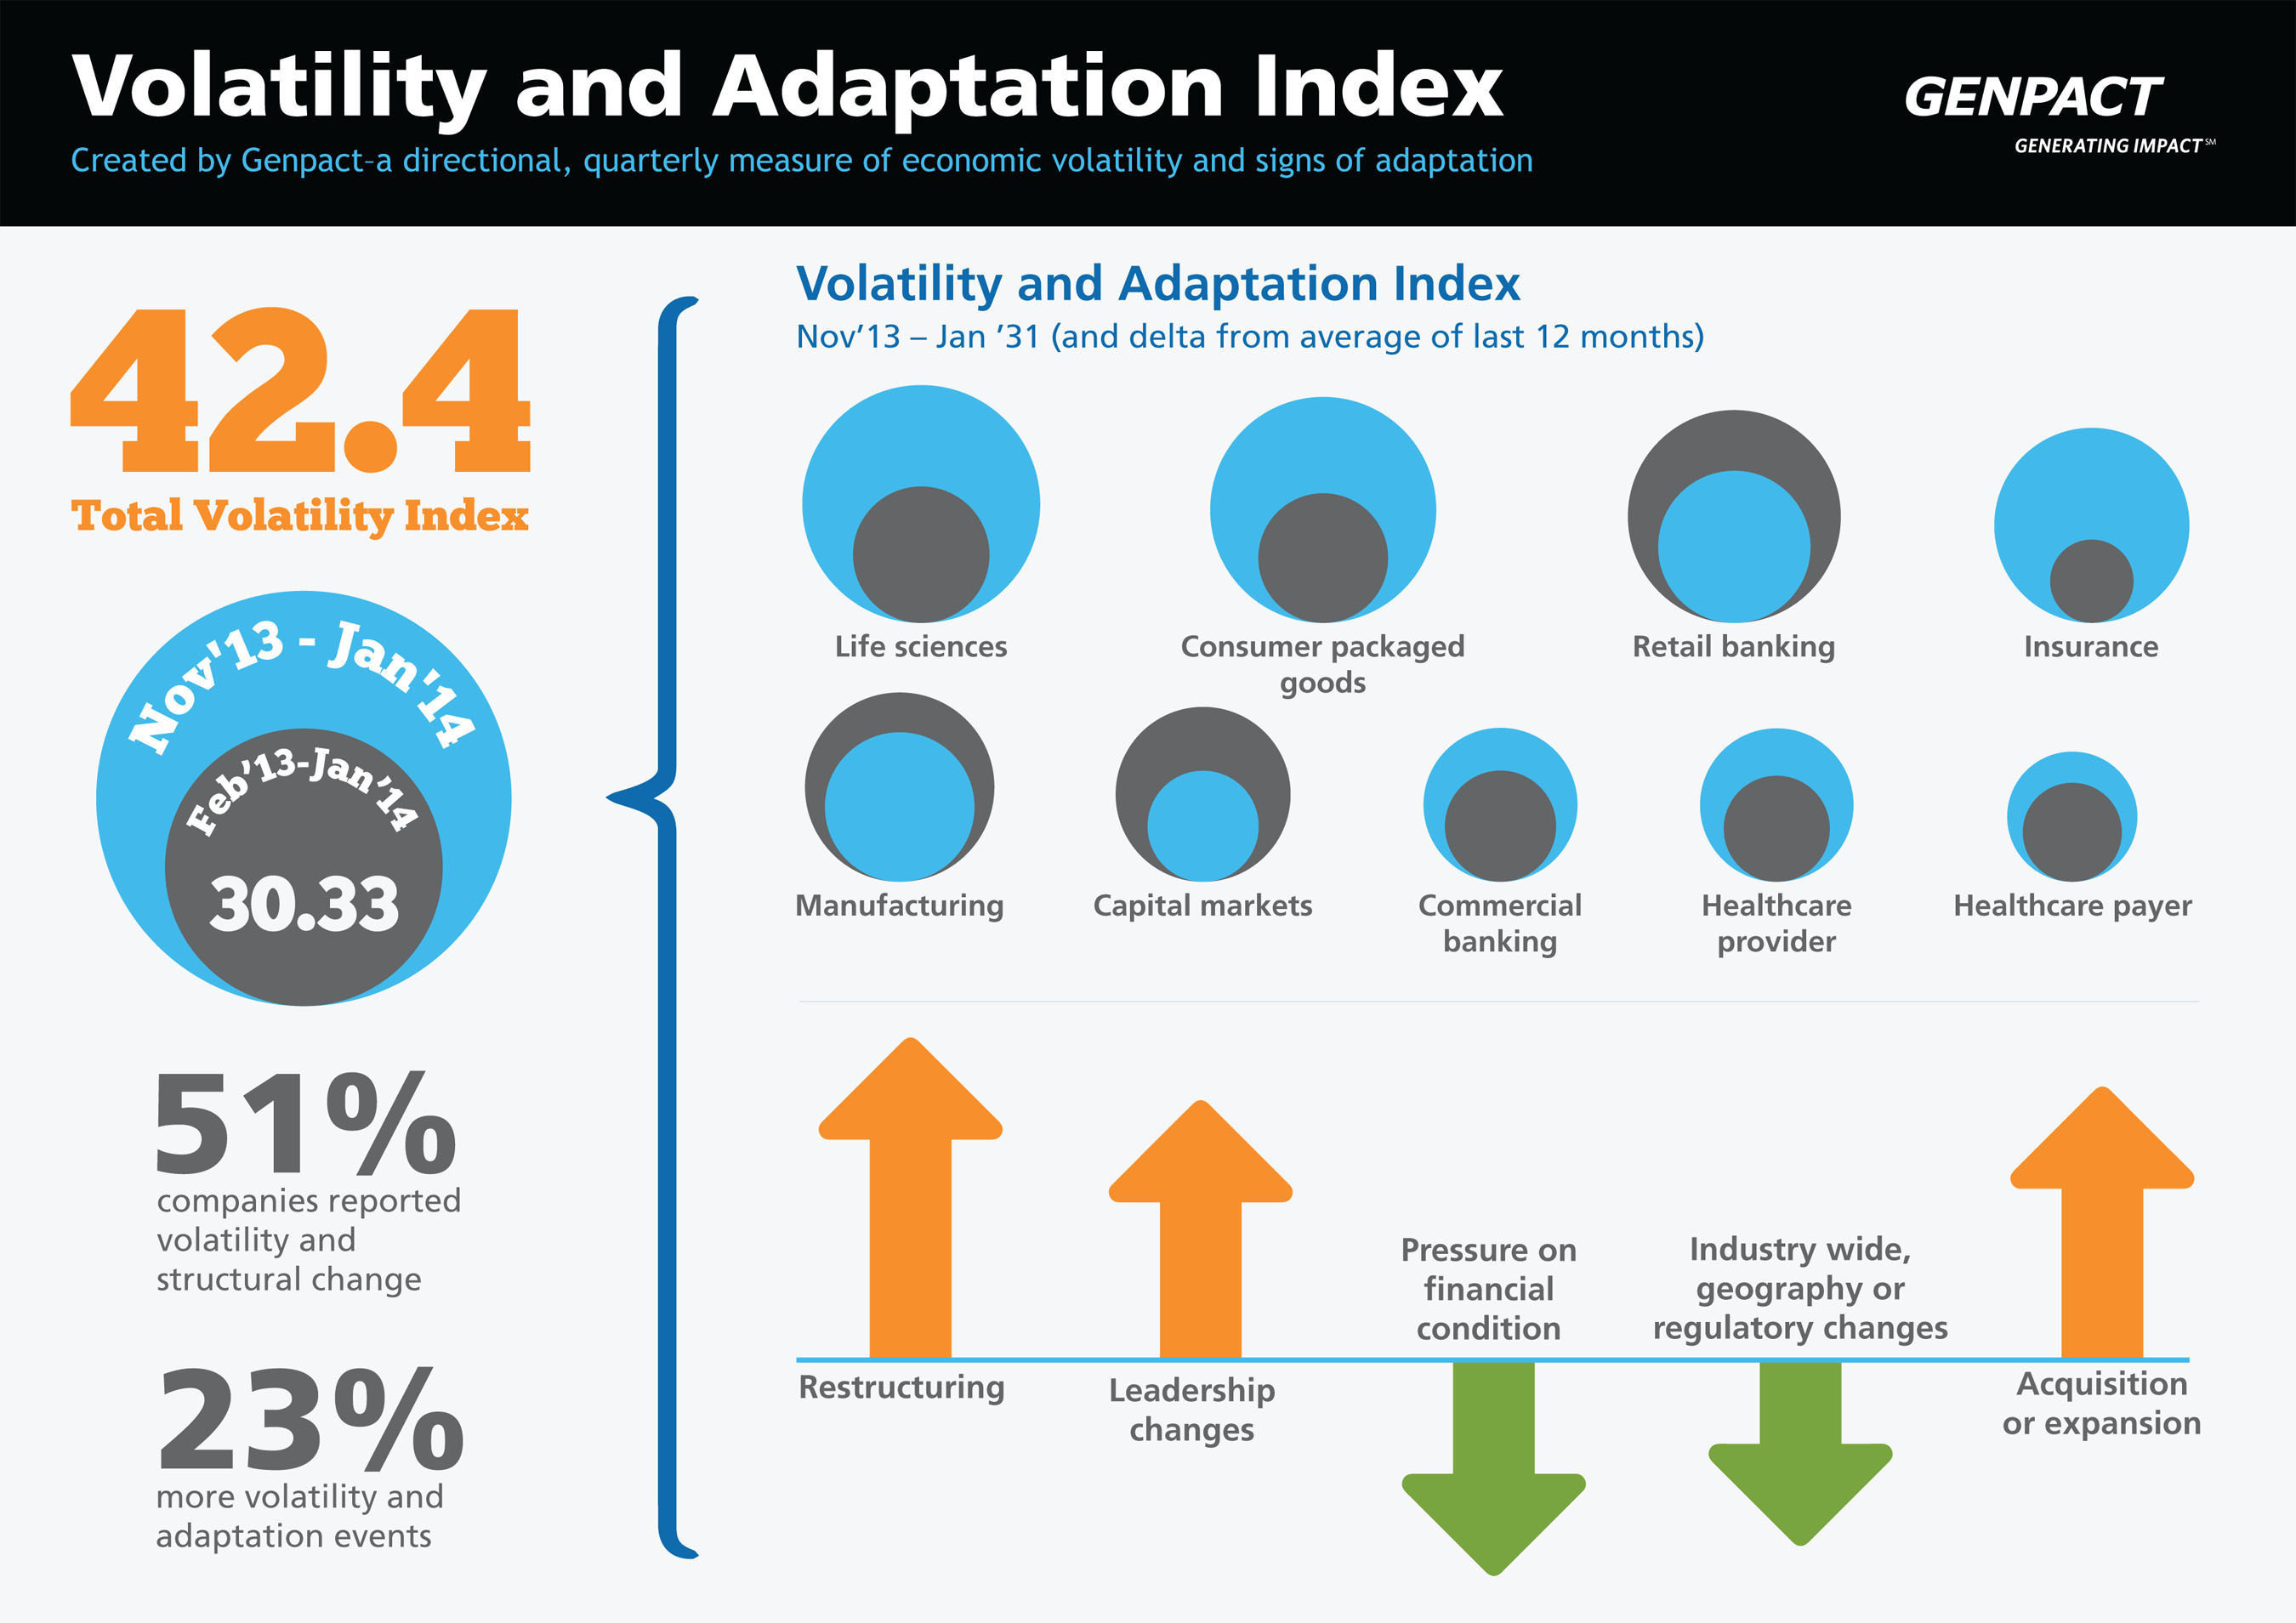 Genpact's Global Business Volatility and Adaptation Index Has Risen, Driven by Acquisitions,